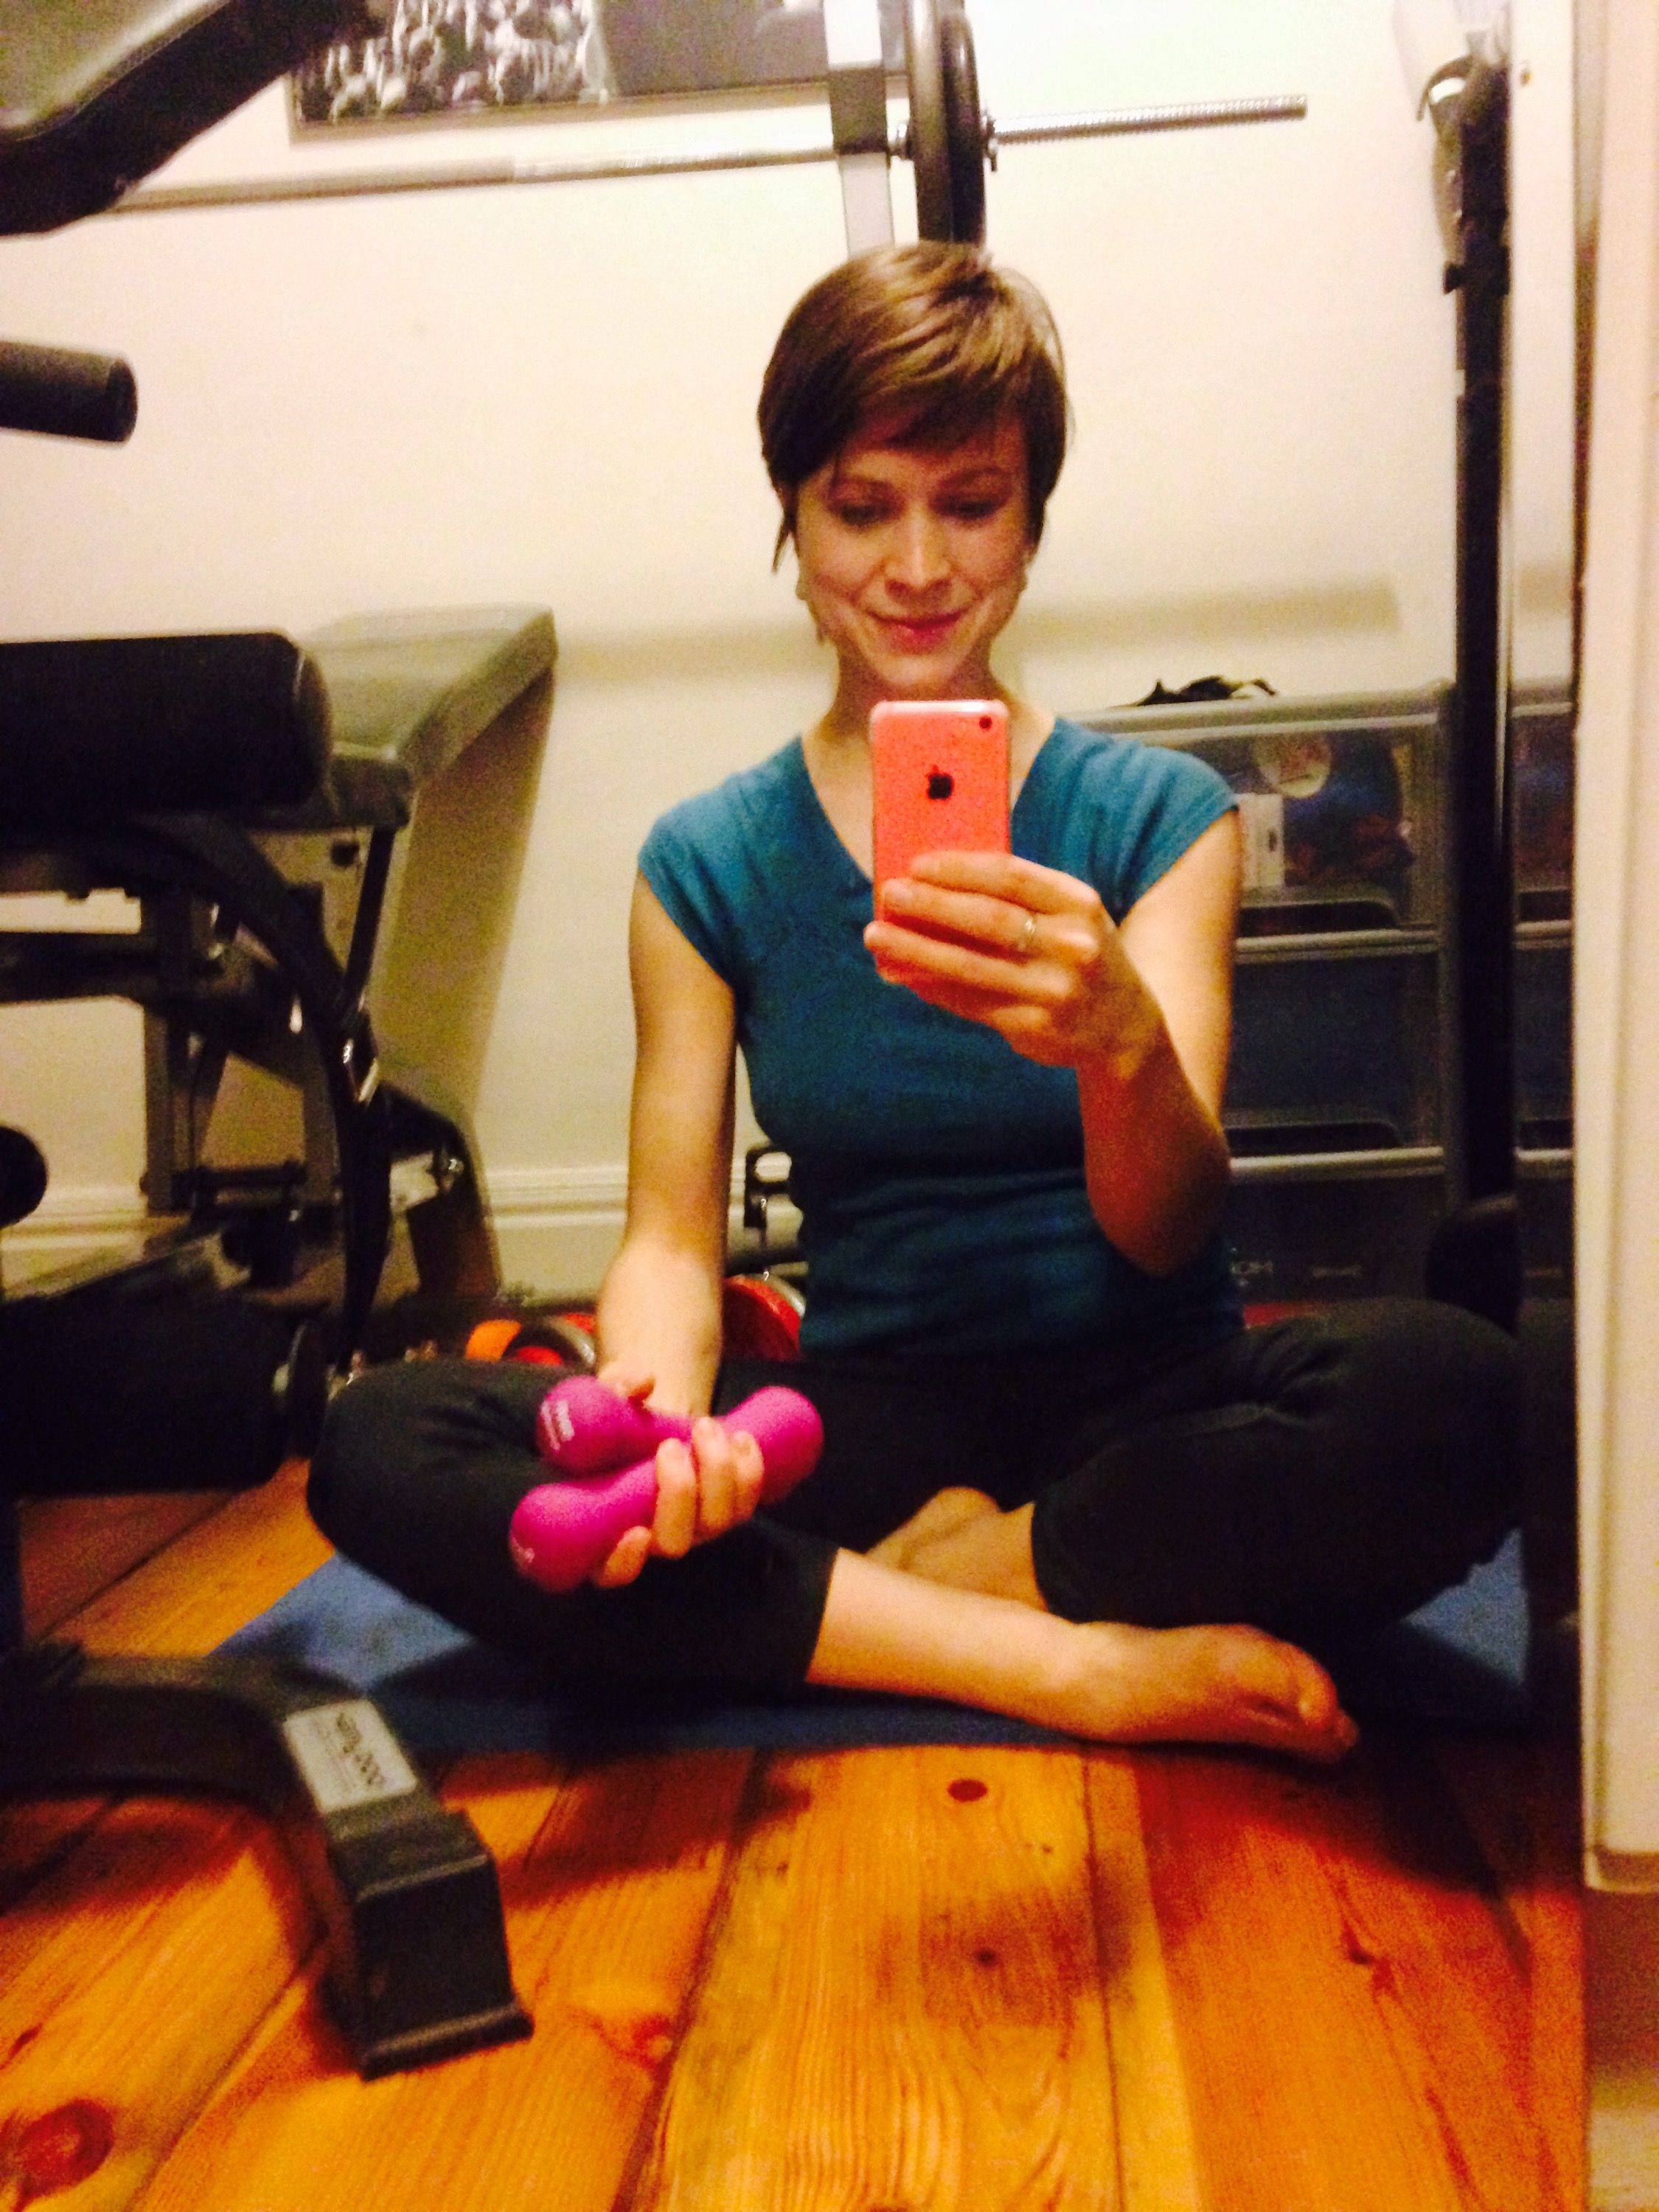 Photograph of women with diastasis recti after finshing Pilates exercise at home